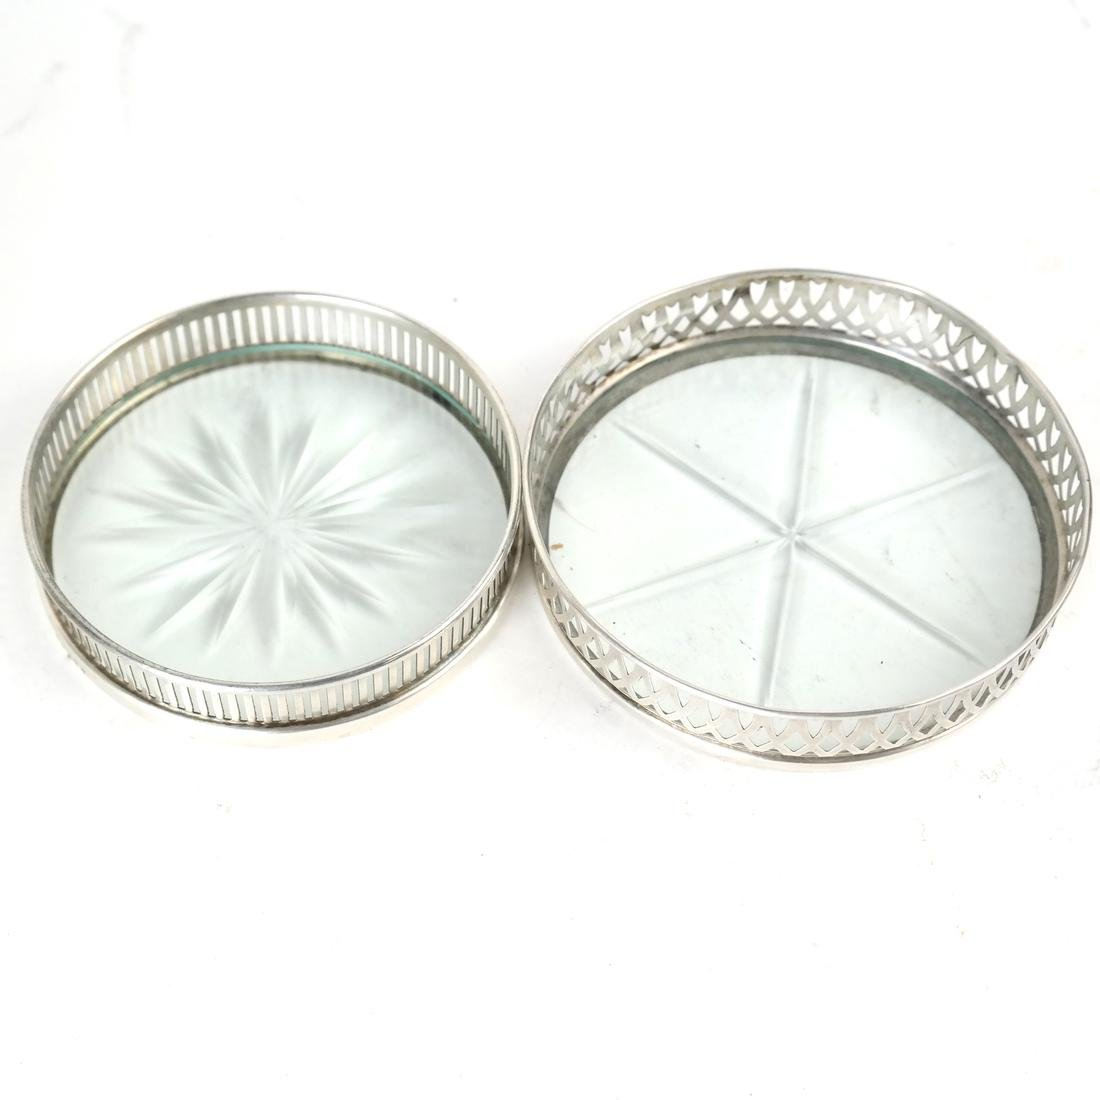 14 Misc. Silver & Plate Serving Articles - 4